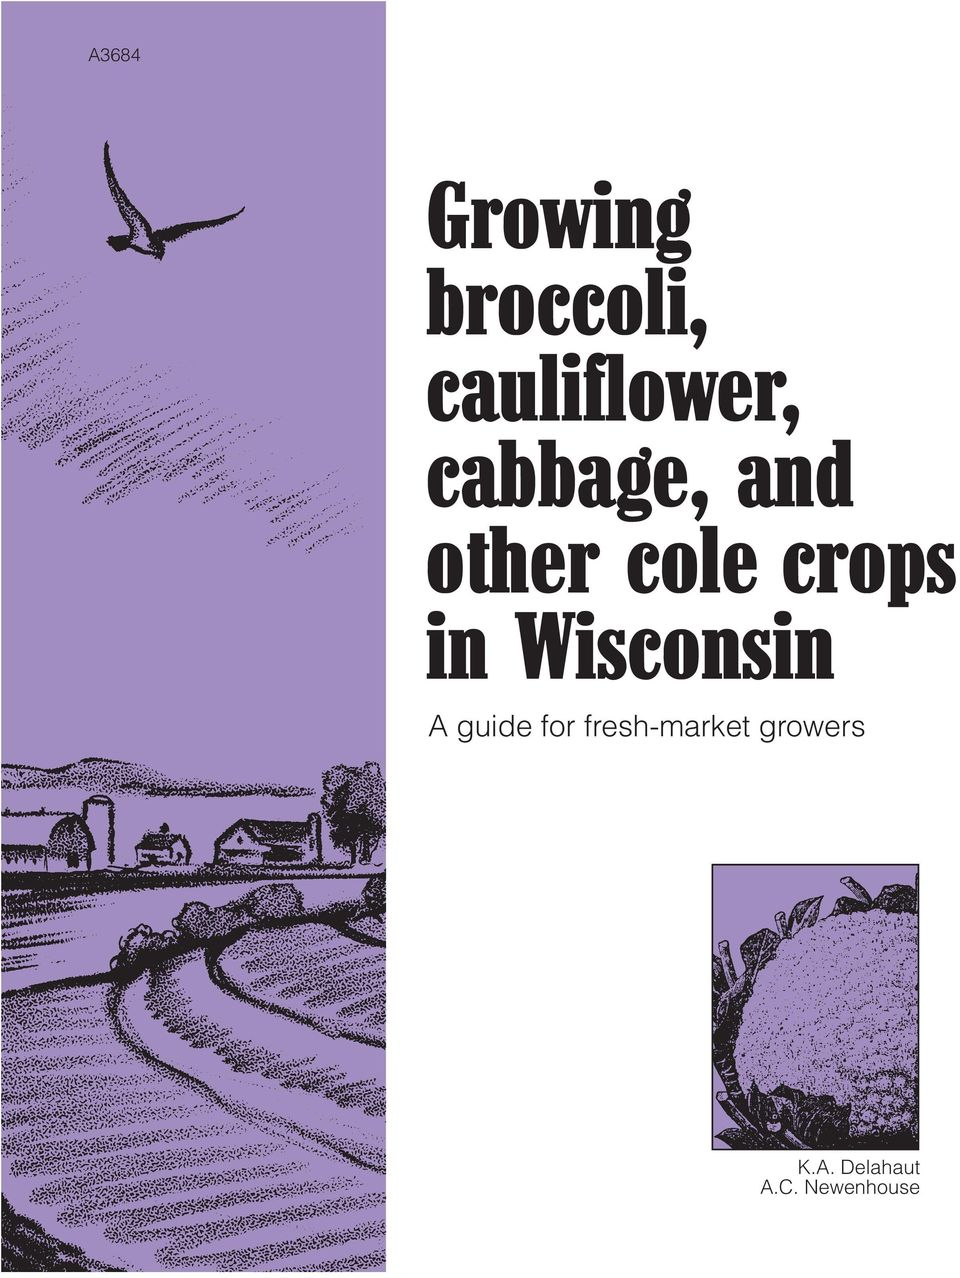 cole crops in Wisconsin A guide for